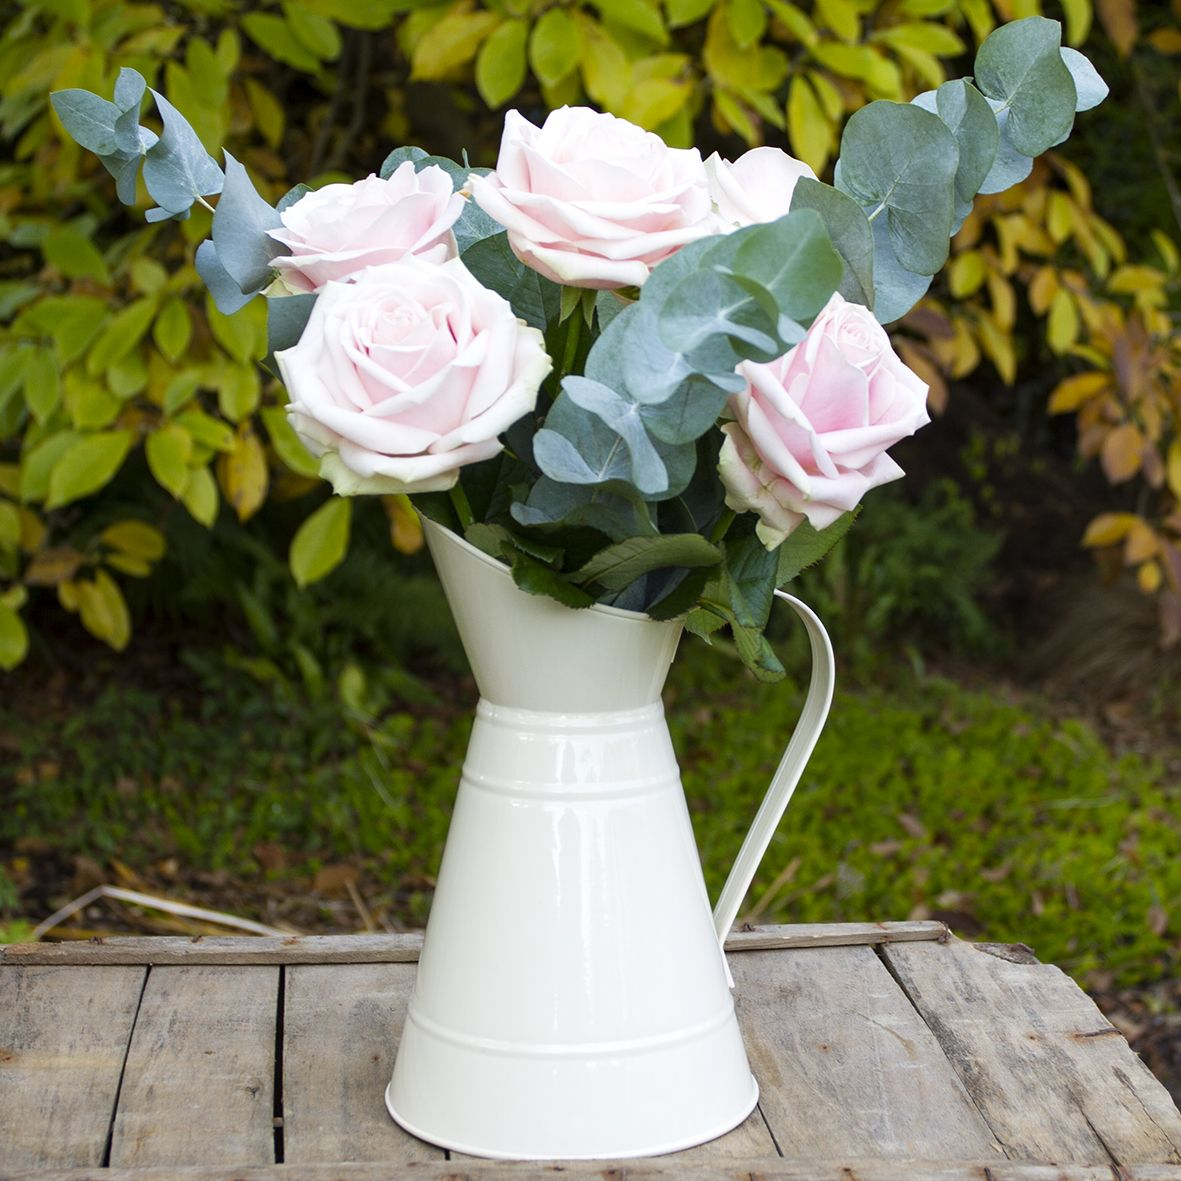 Centrepieces, Jugs and Vases category image